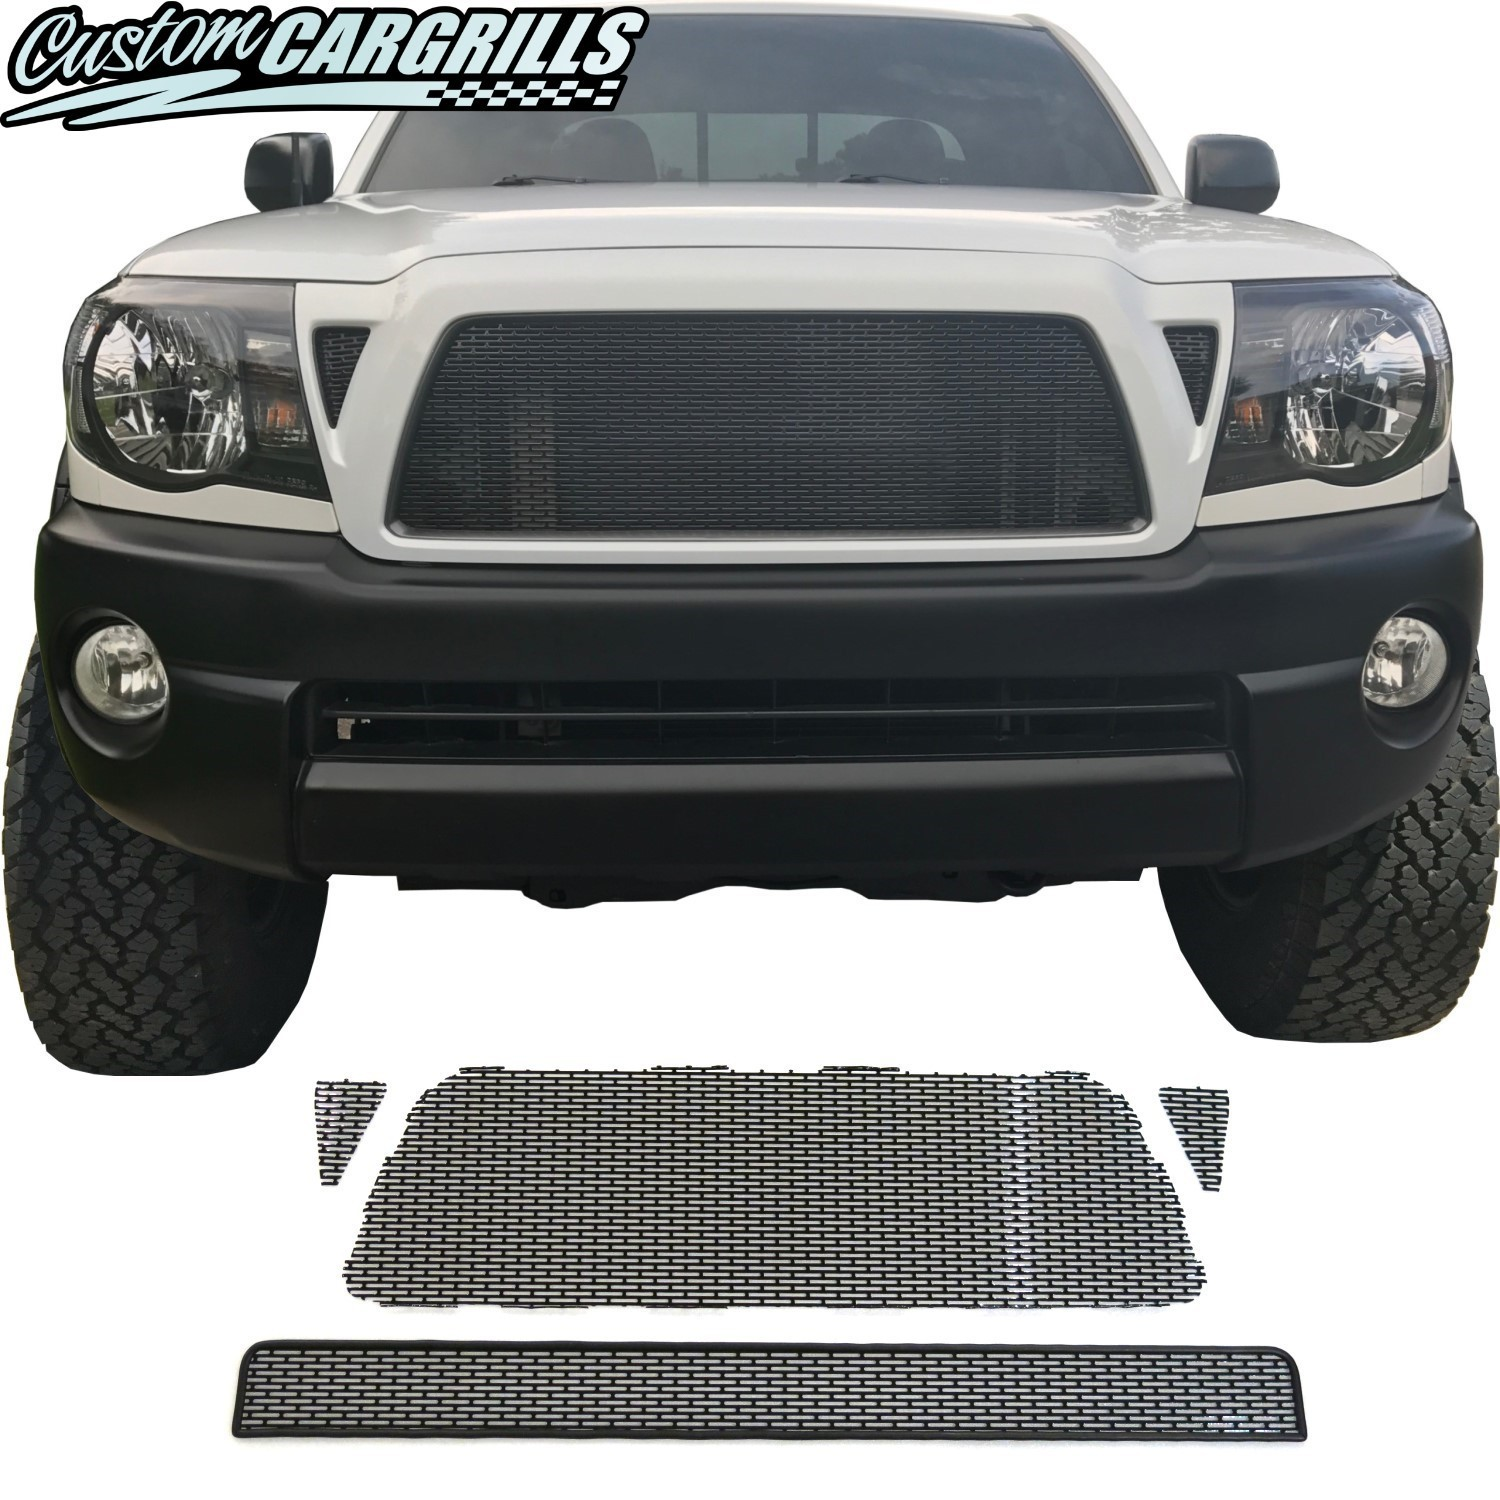 2005 - 2011 Toyota Tacoma Mesh Grill Insert